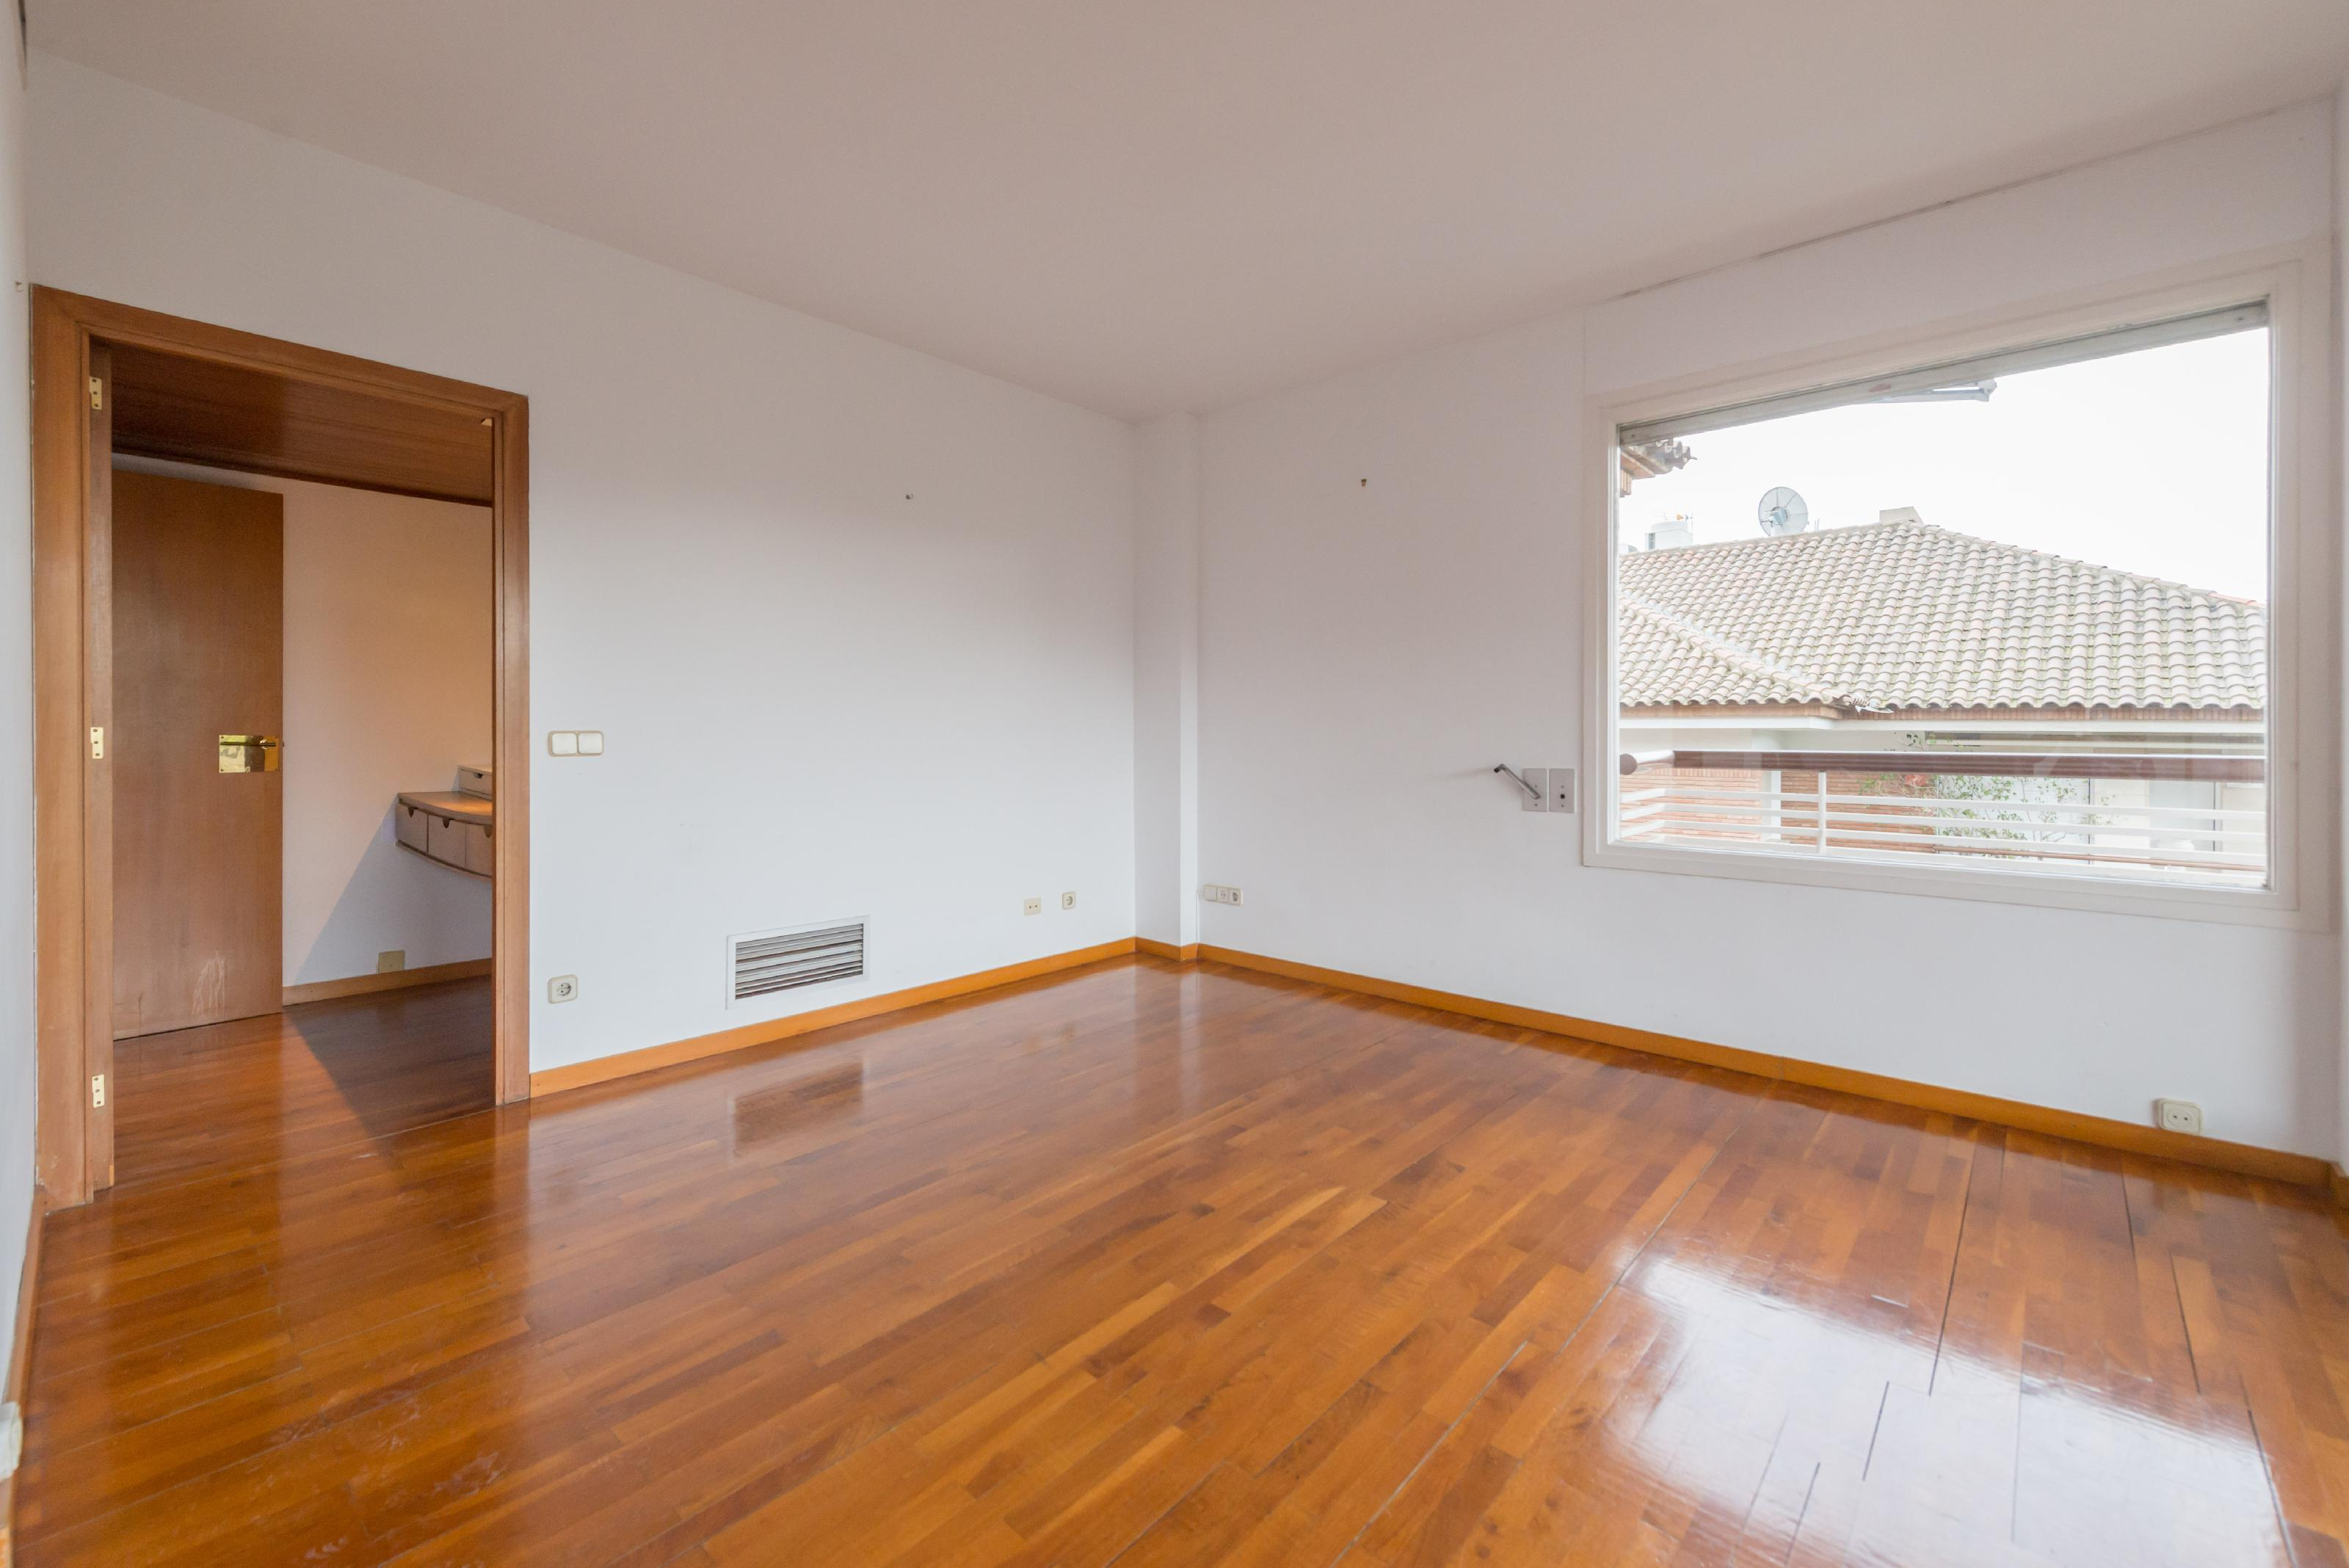 245495 Penthouse for sale in Les Corts, Pedralbes 6